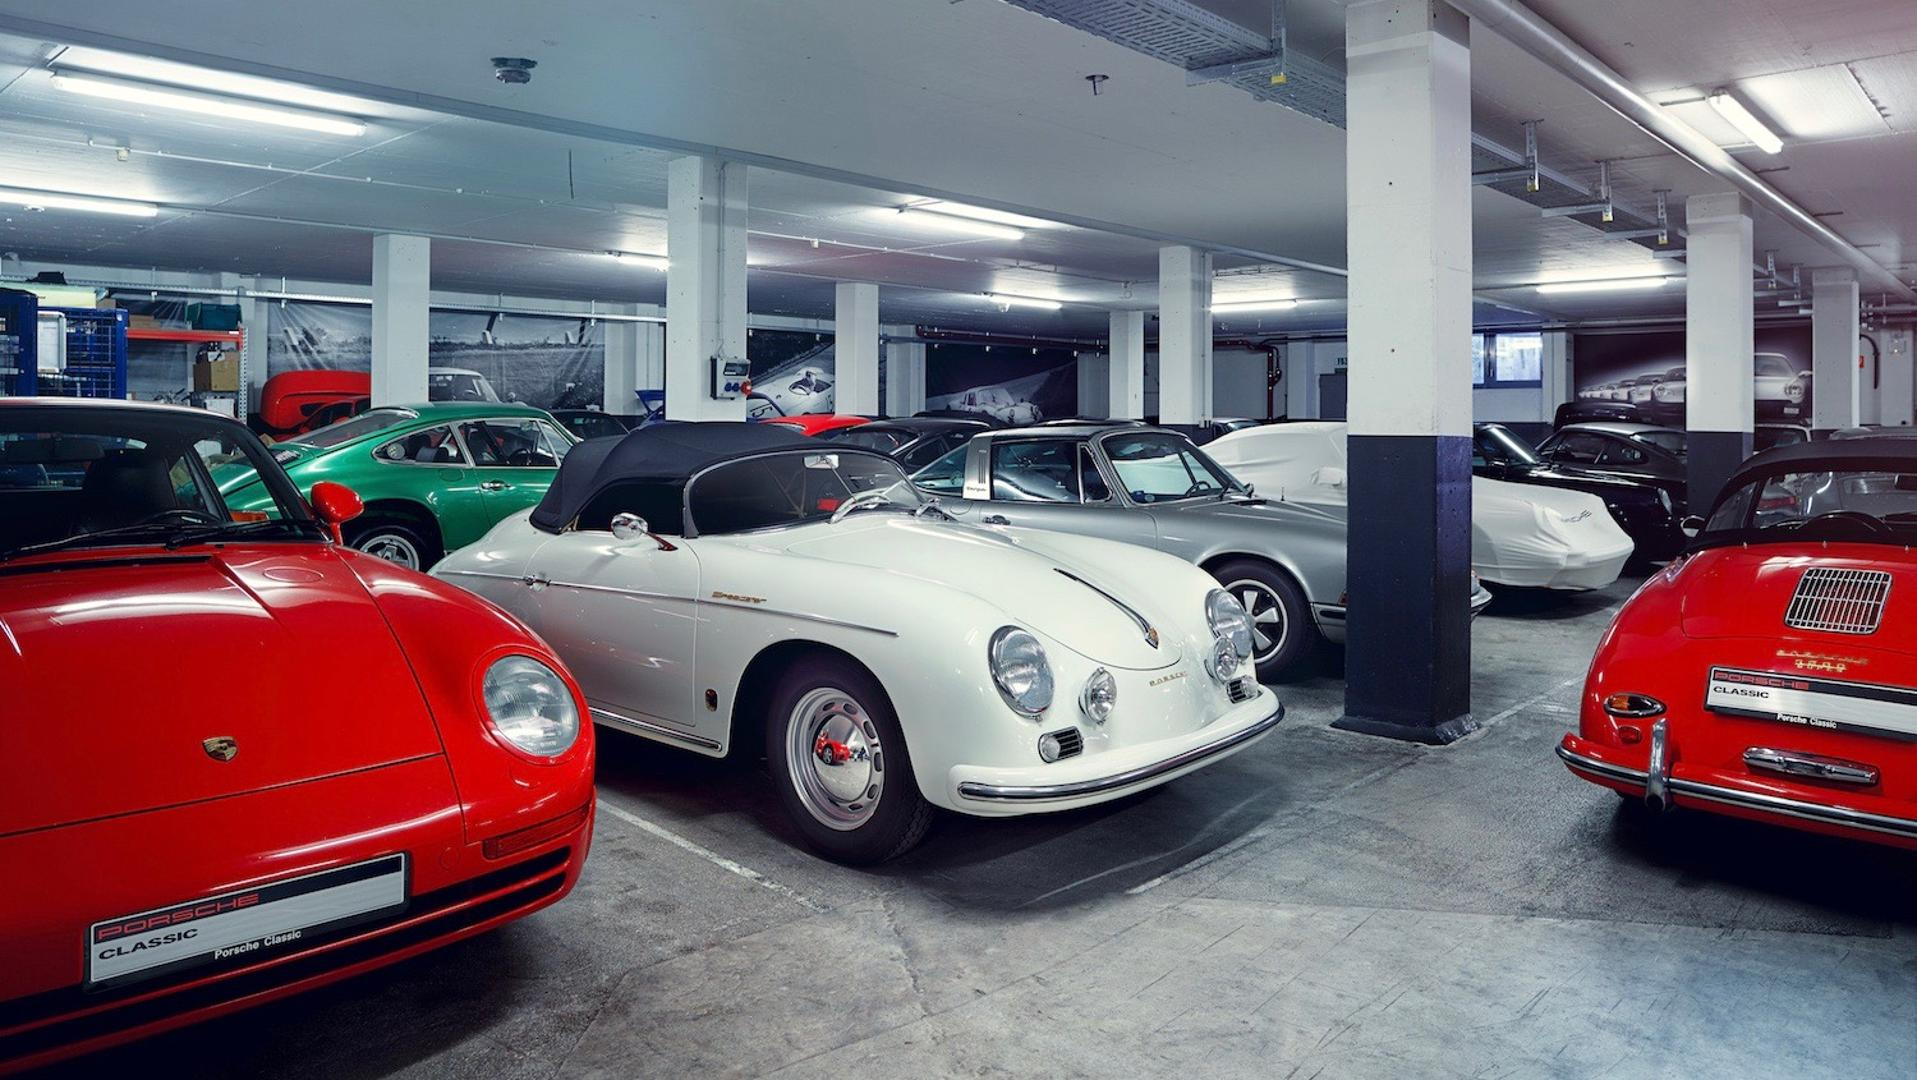 Porsche will 3D print spare parts for classic cars